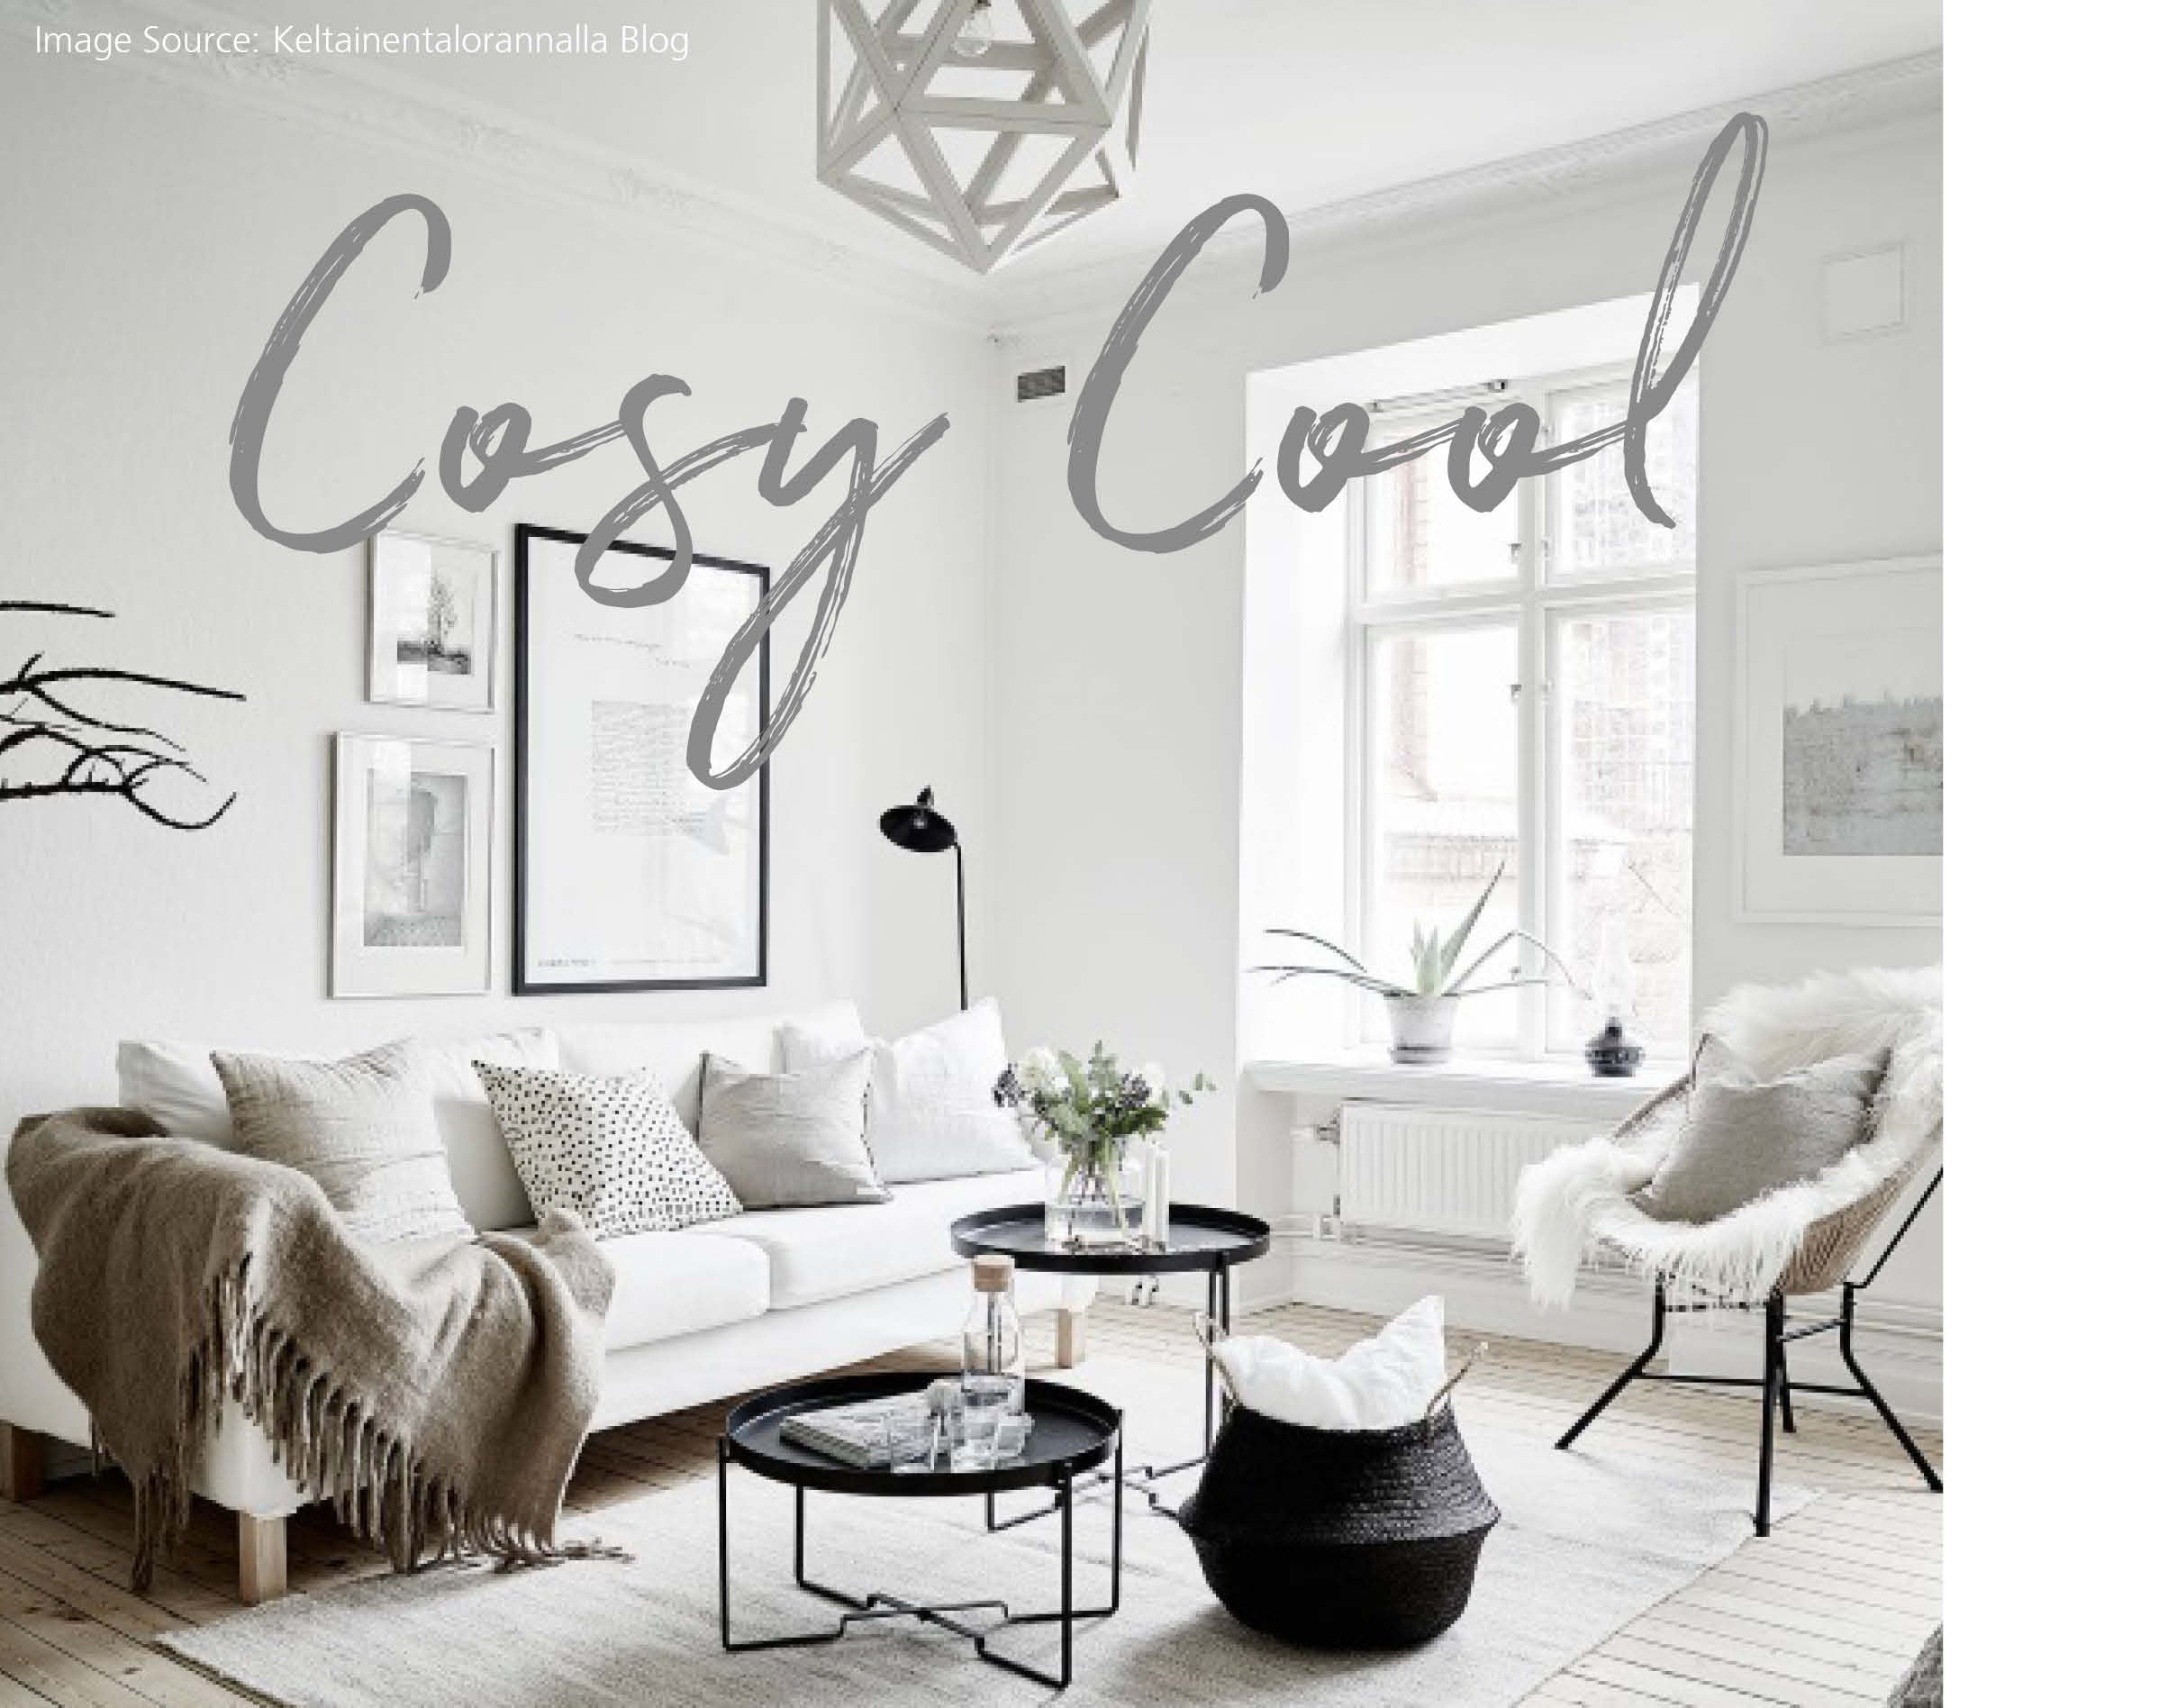 Ah the scandinavian style simple functional beautiful and oh so cozy a calming aesthetic that has influenced interiors all over the world and might